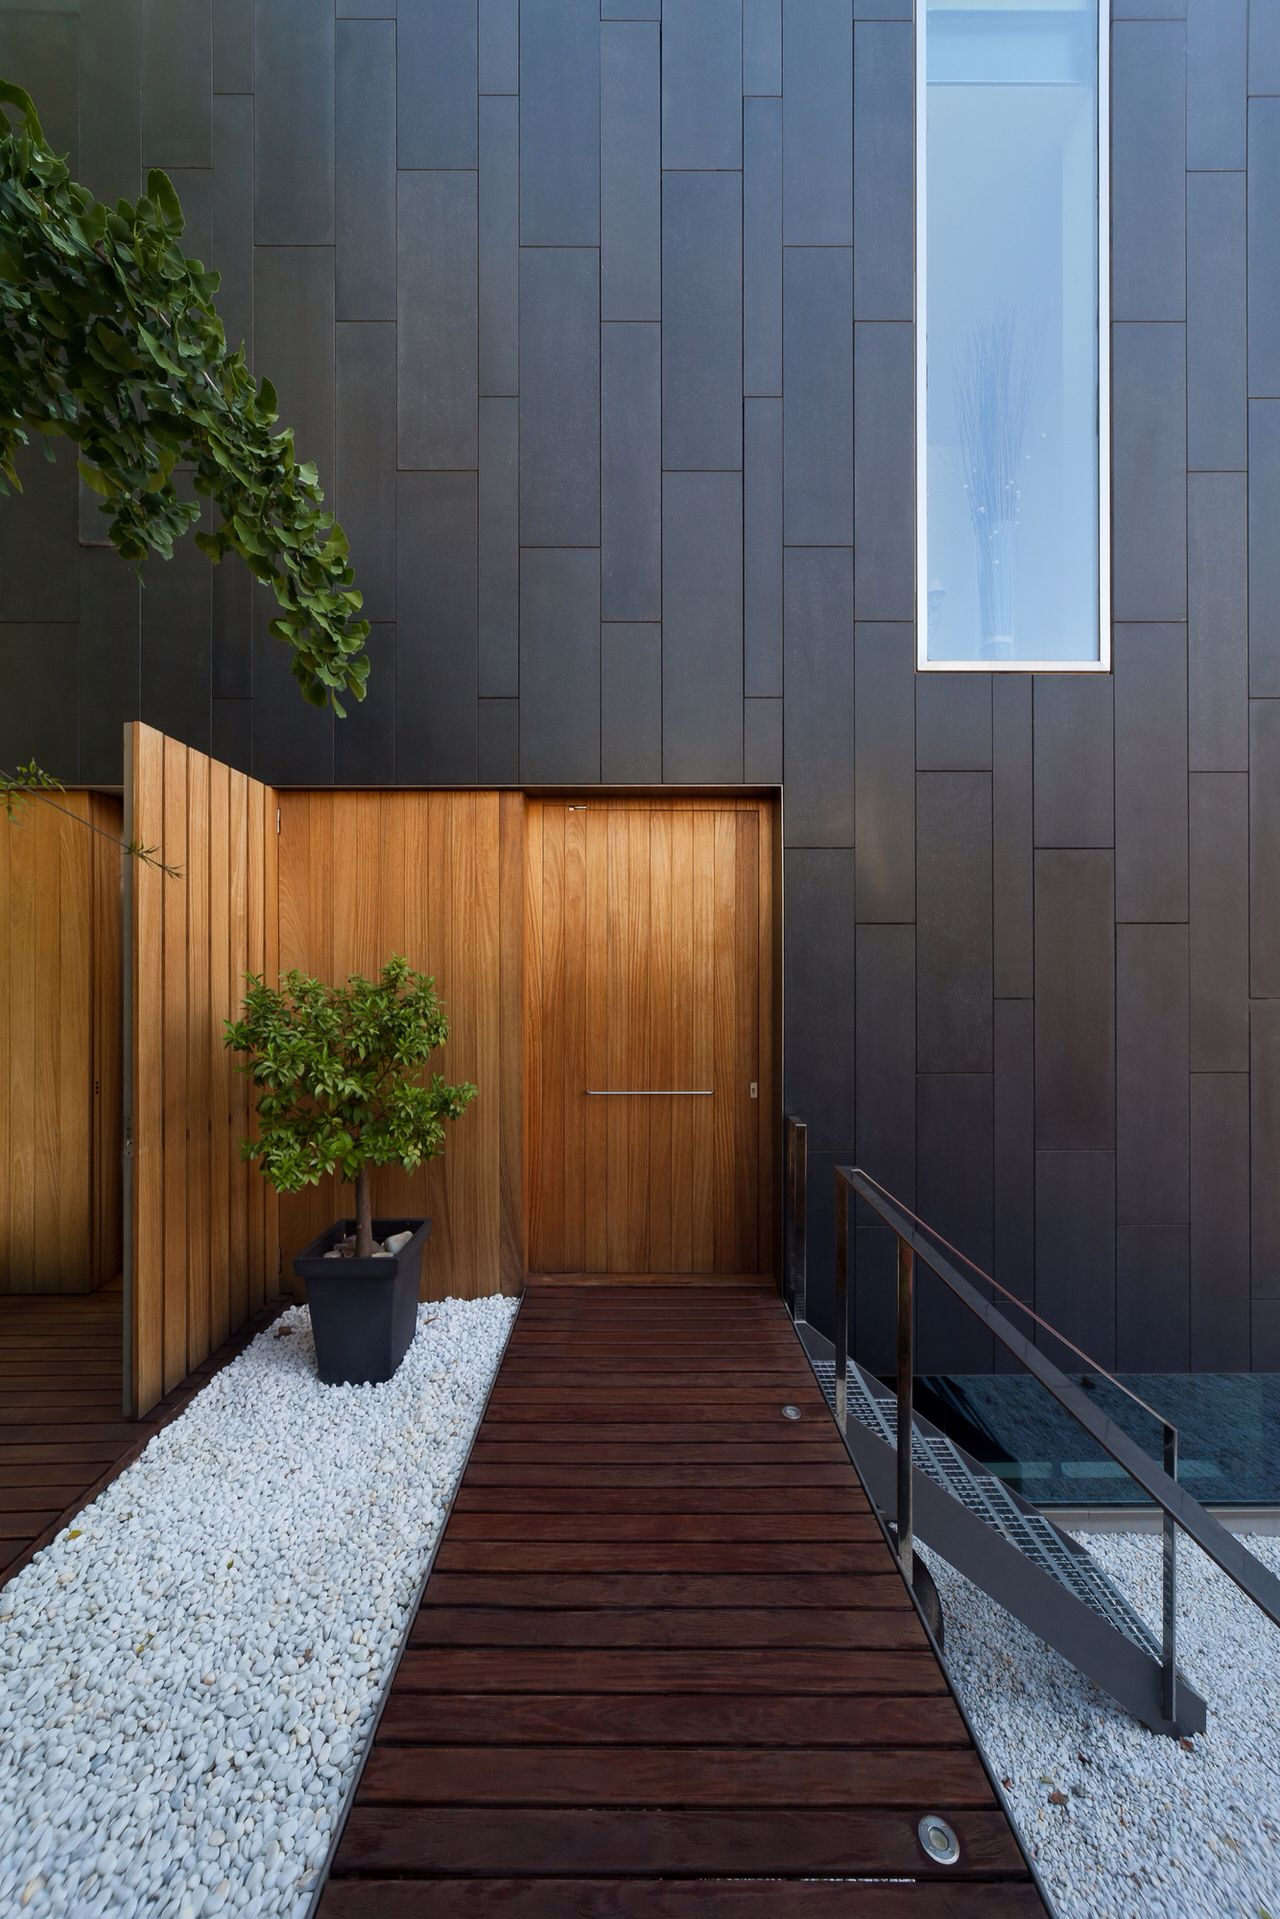 Cool grey house side paneling accented by the wood door fence and walkway & Cool grey house side paneling accented by the wood door fence and ...